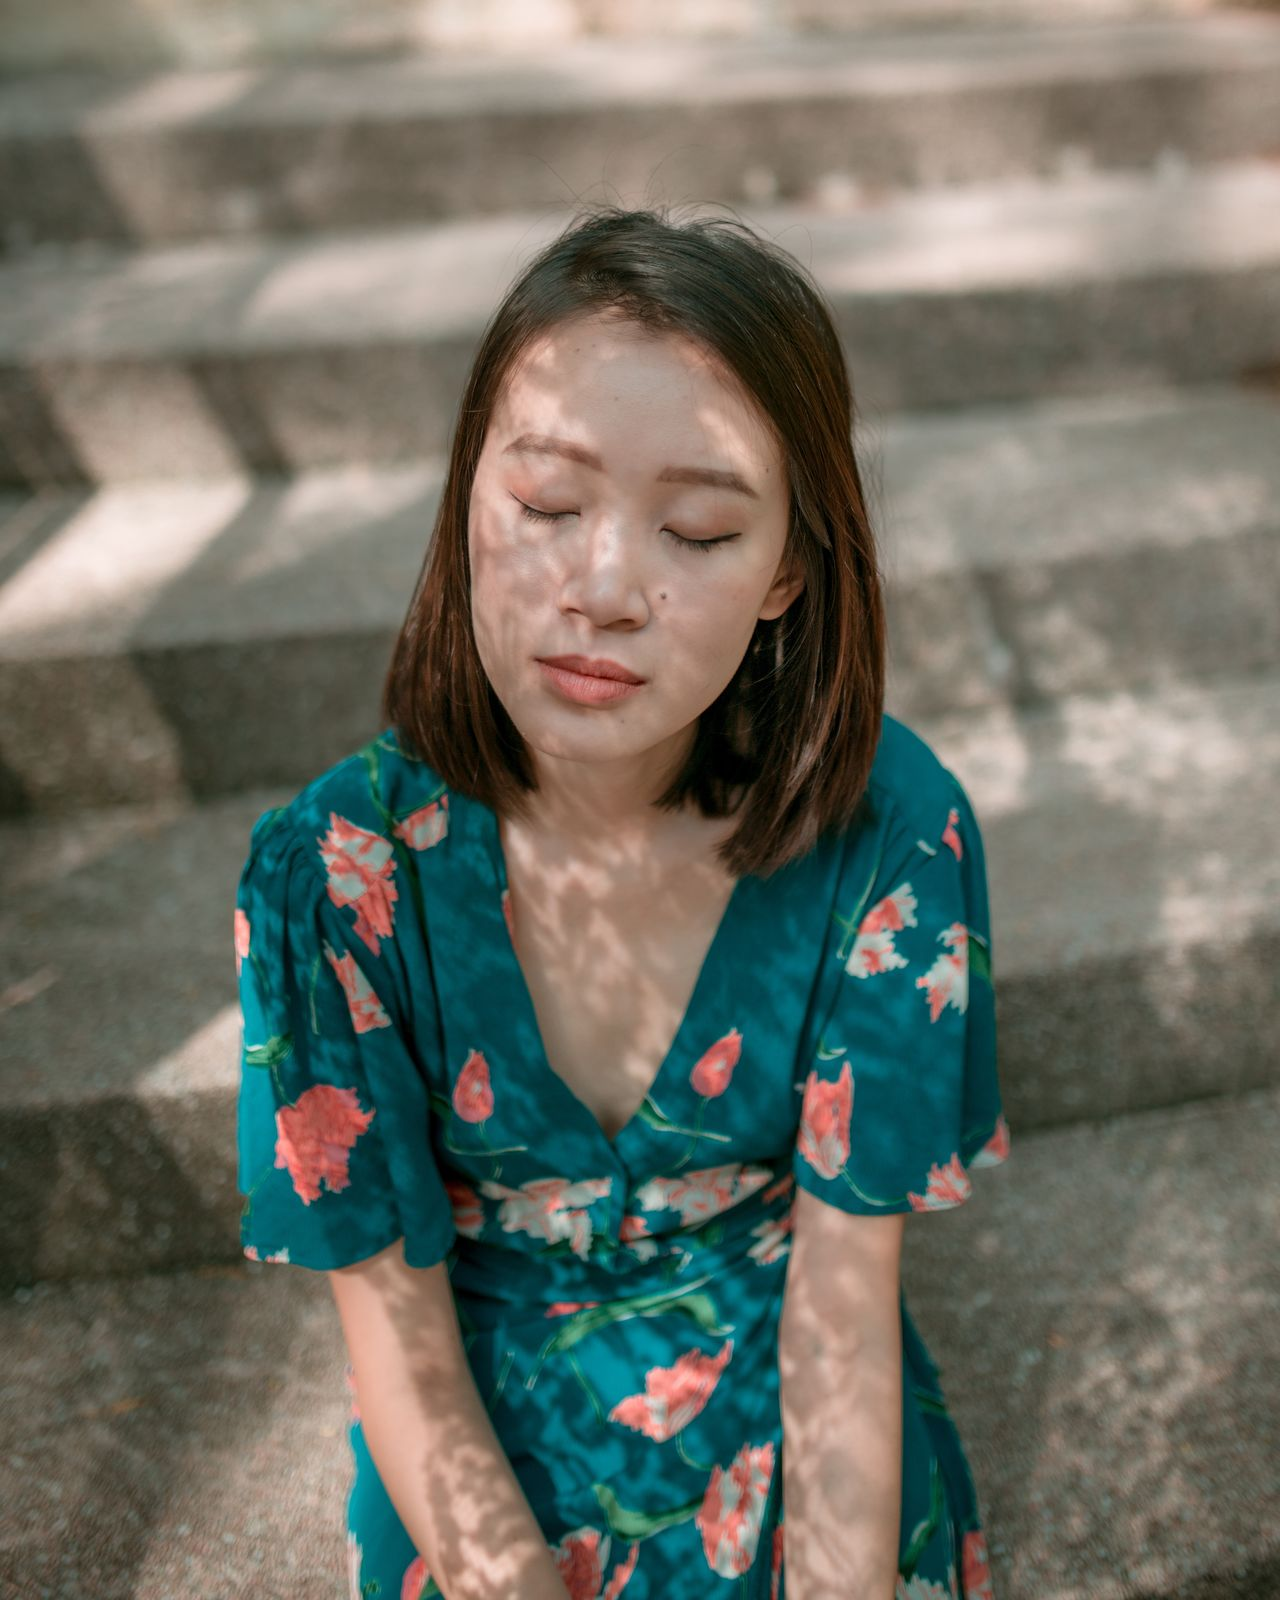 Lace Outdoors Portrait Portrait Photography Portrait Of A Woman Contemplation Beautiful Woman Individuality Beautiful People Eyes Closed  Light And Shadow Women Around The World Dreamlike The Portraitist - 2017 EyeEm Awards Light Collection Light Only Women Floral Flowers